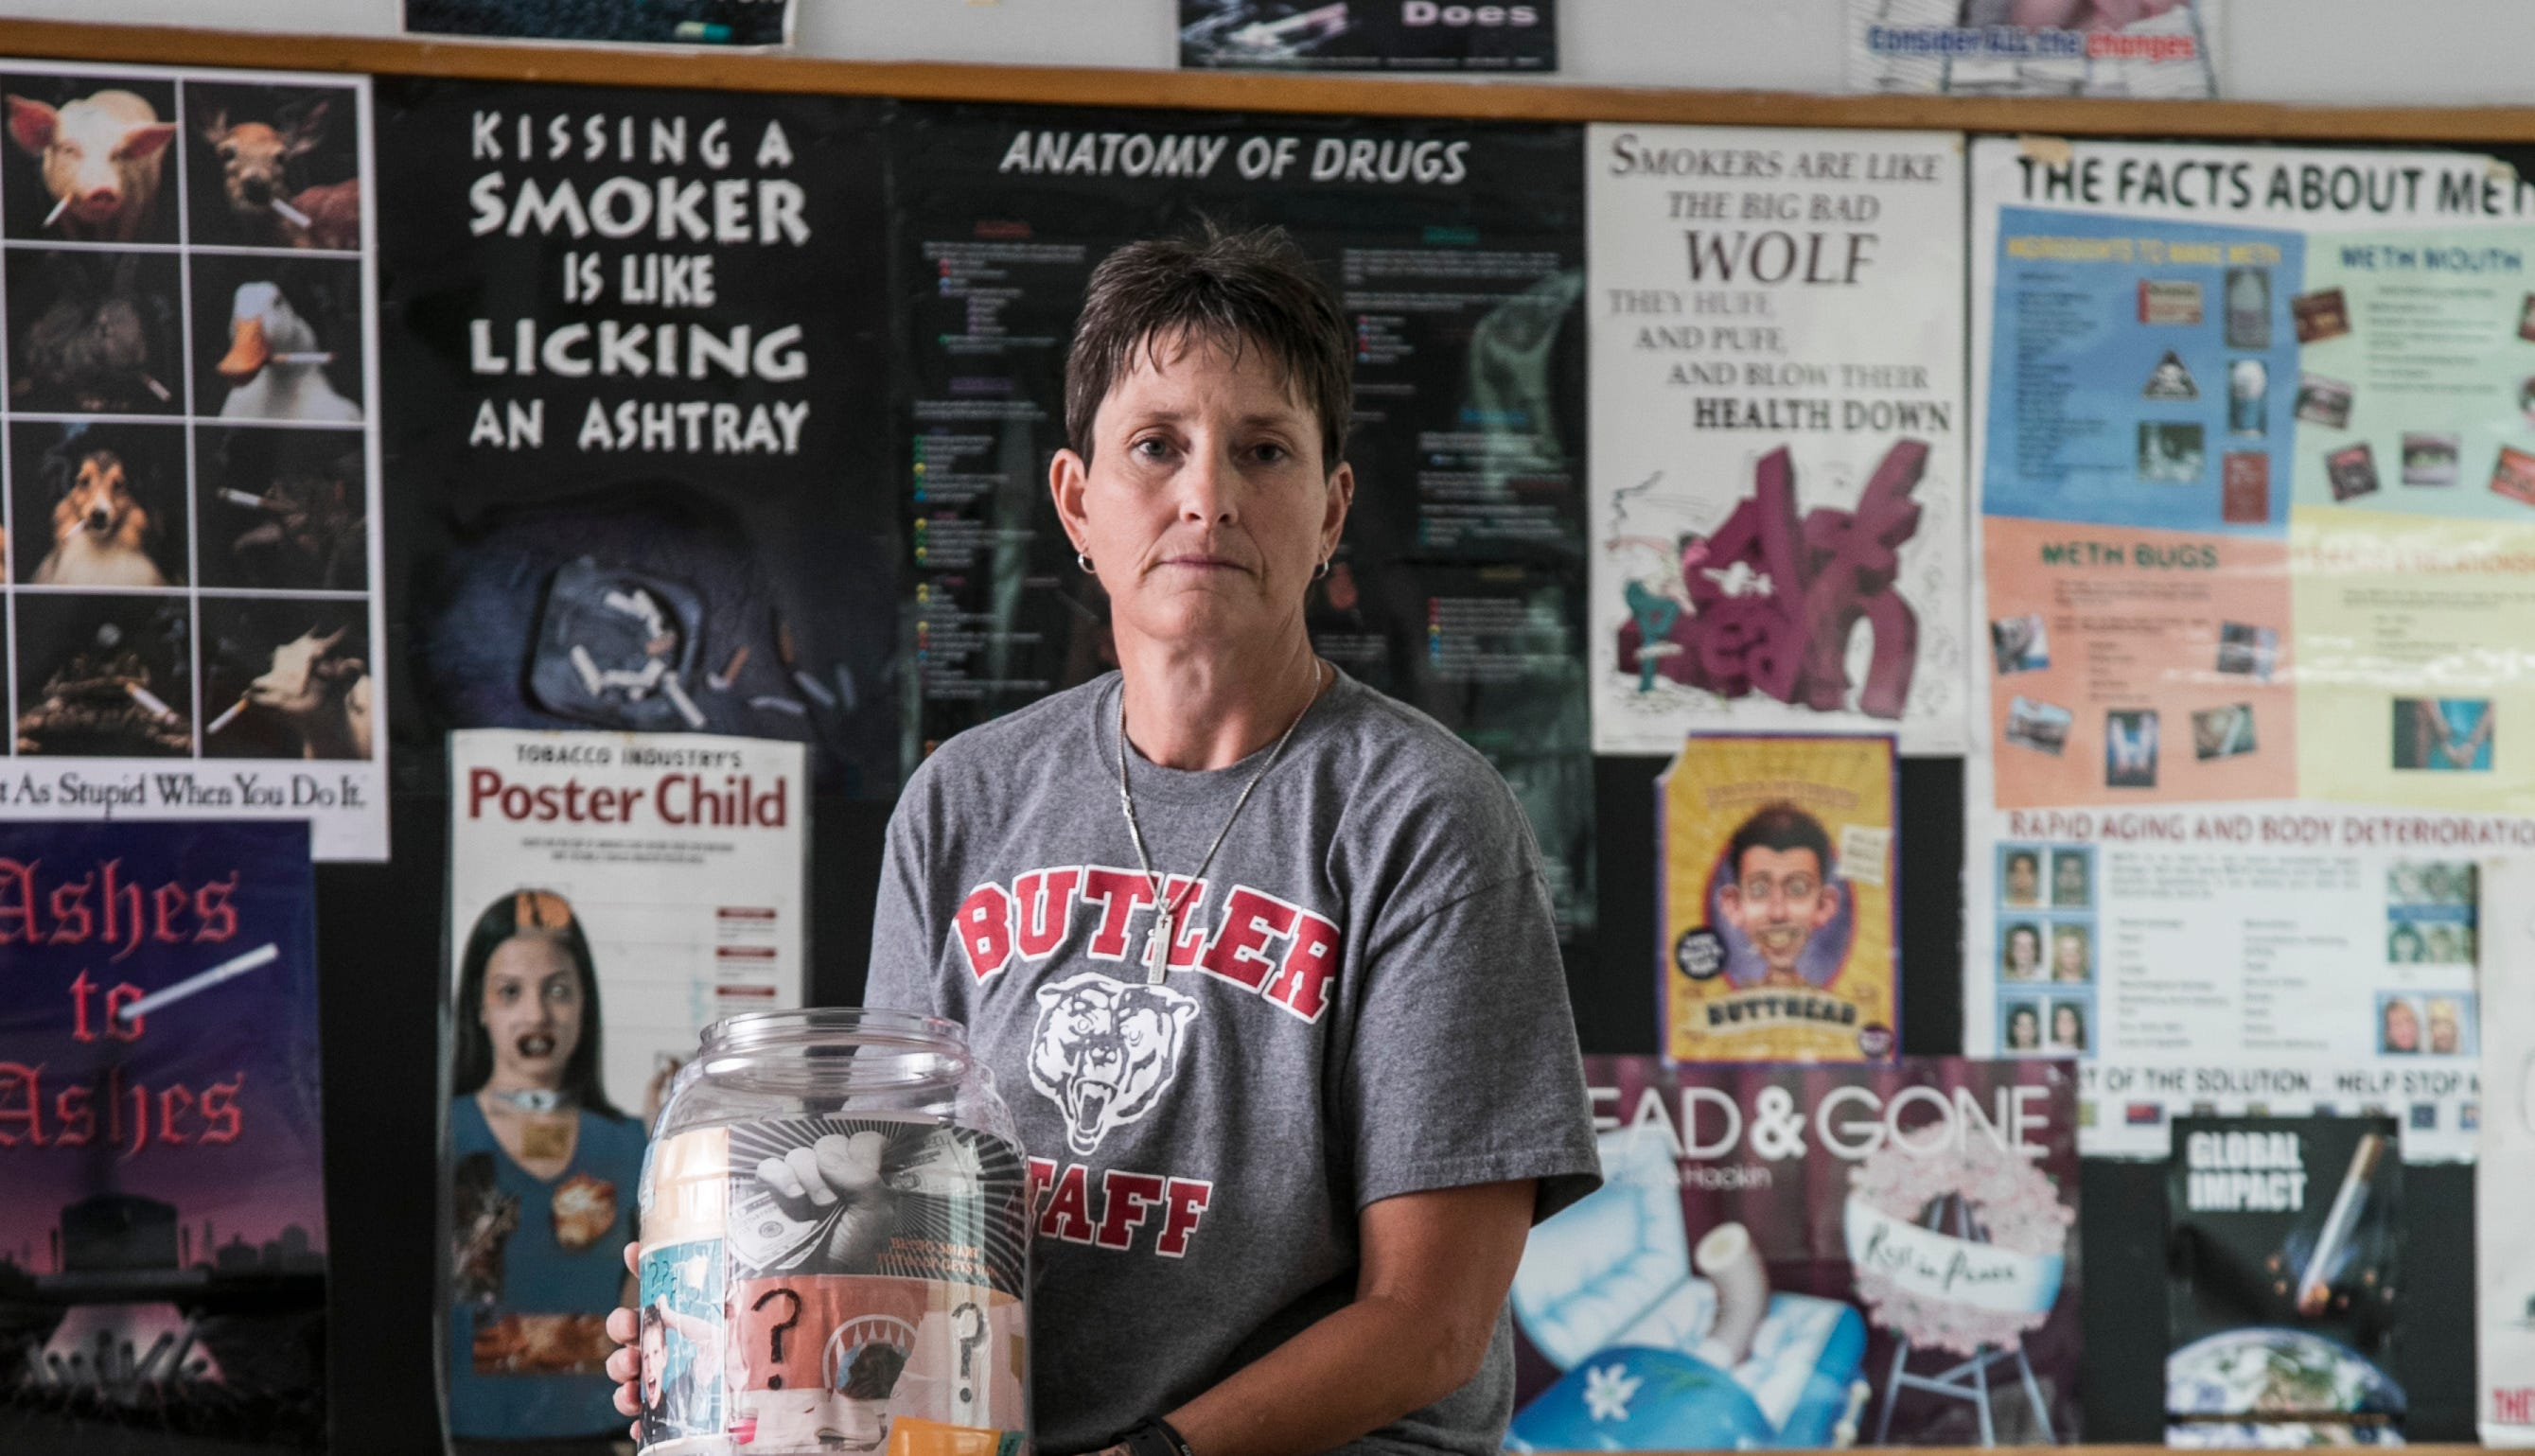 Opioid abuse surged in Jefferson County as JCPS drug education fell apart